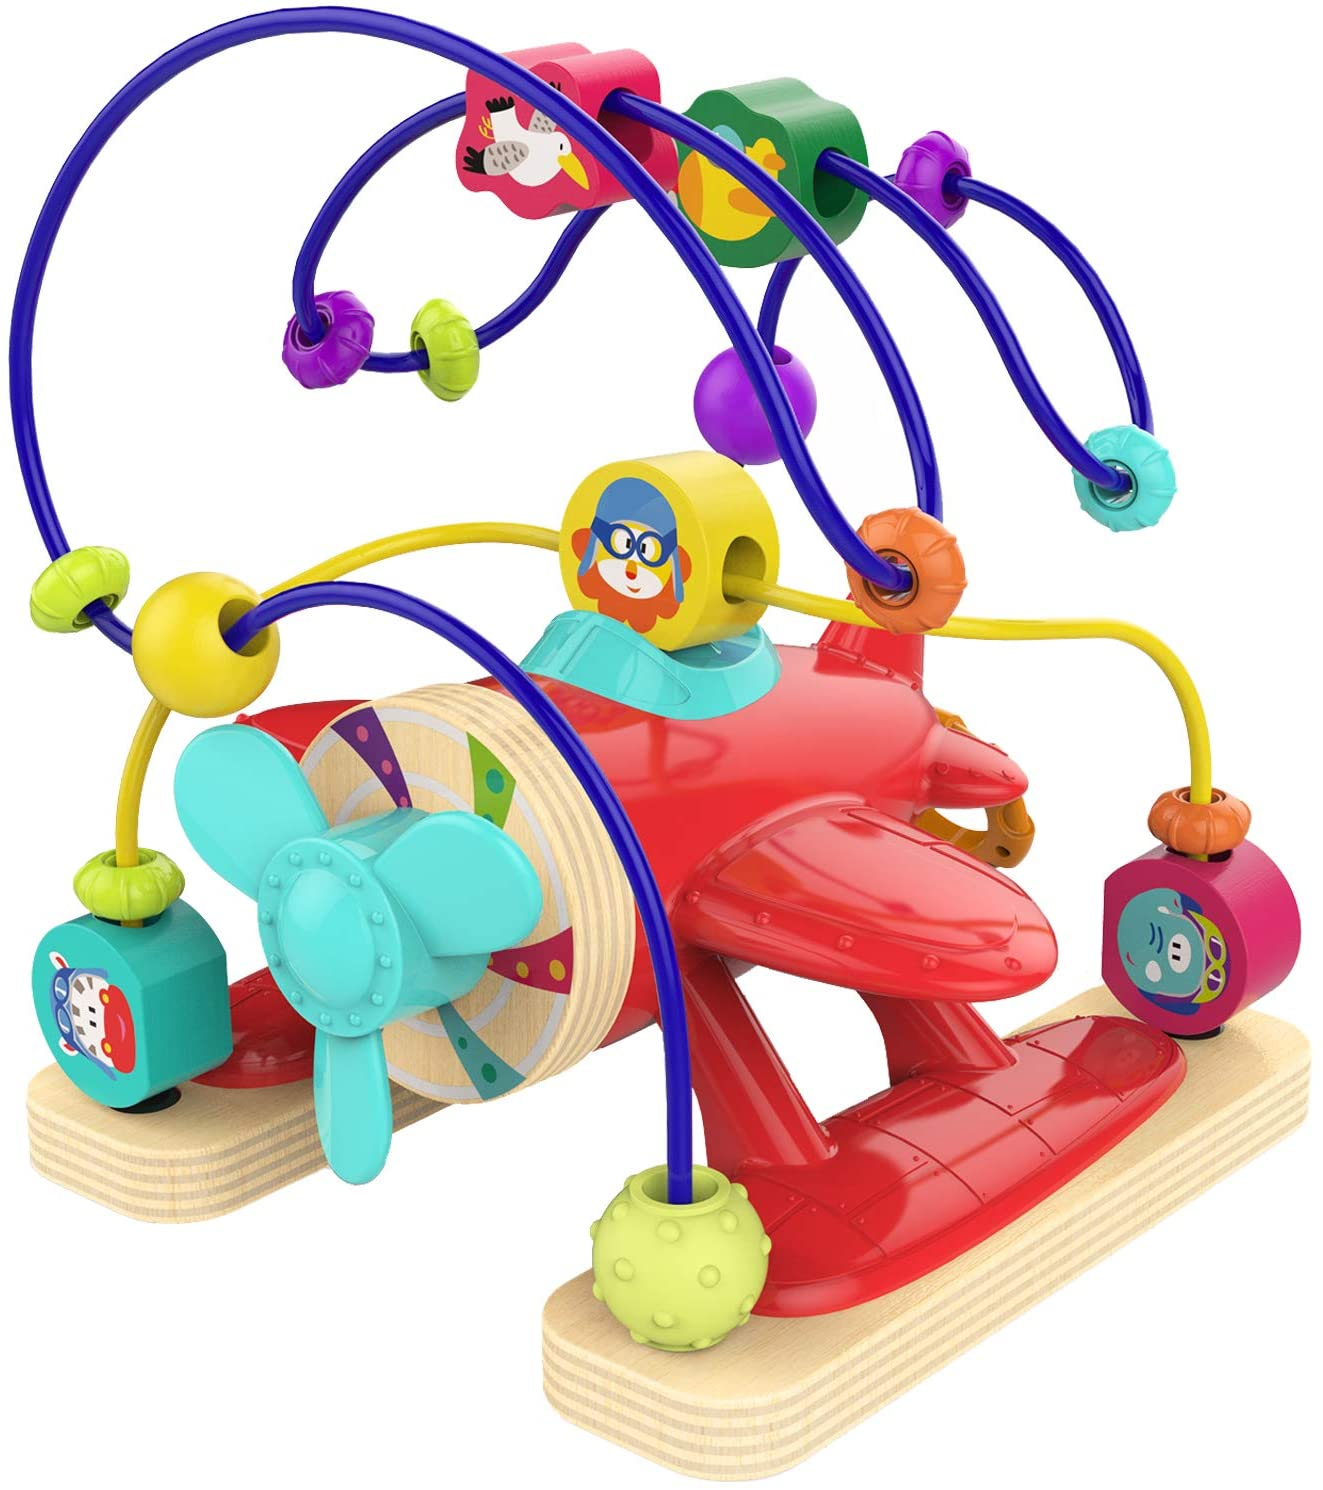 TOP BRIGHT Bead Maze Toys for 1 Year Old Boy Gifts - Educational Bead Maze for Toddlers Boy One Year Old Airplane Toys